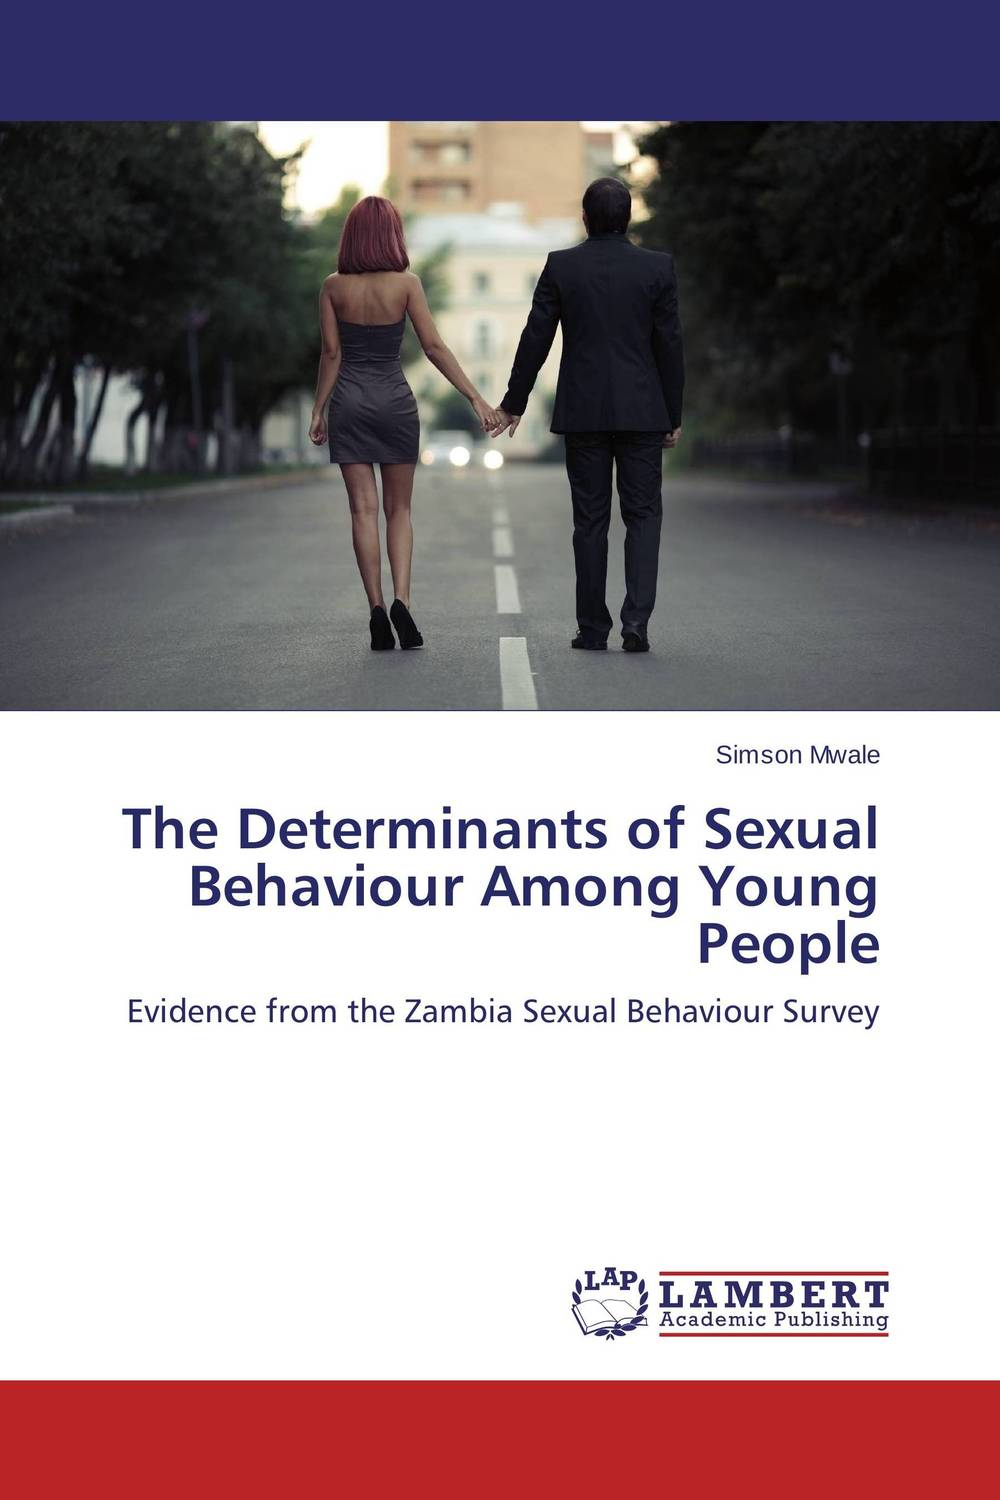 The Determinants of Sexual Behaviour Among Young People young people young people all at once